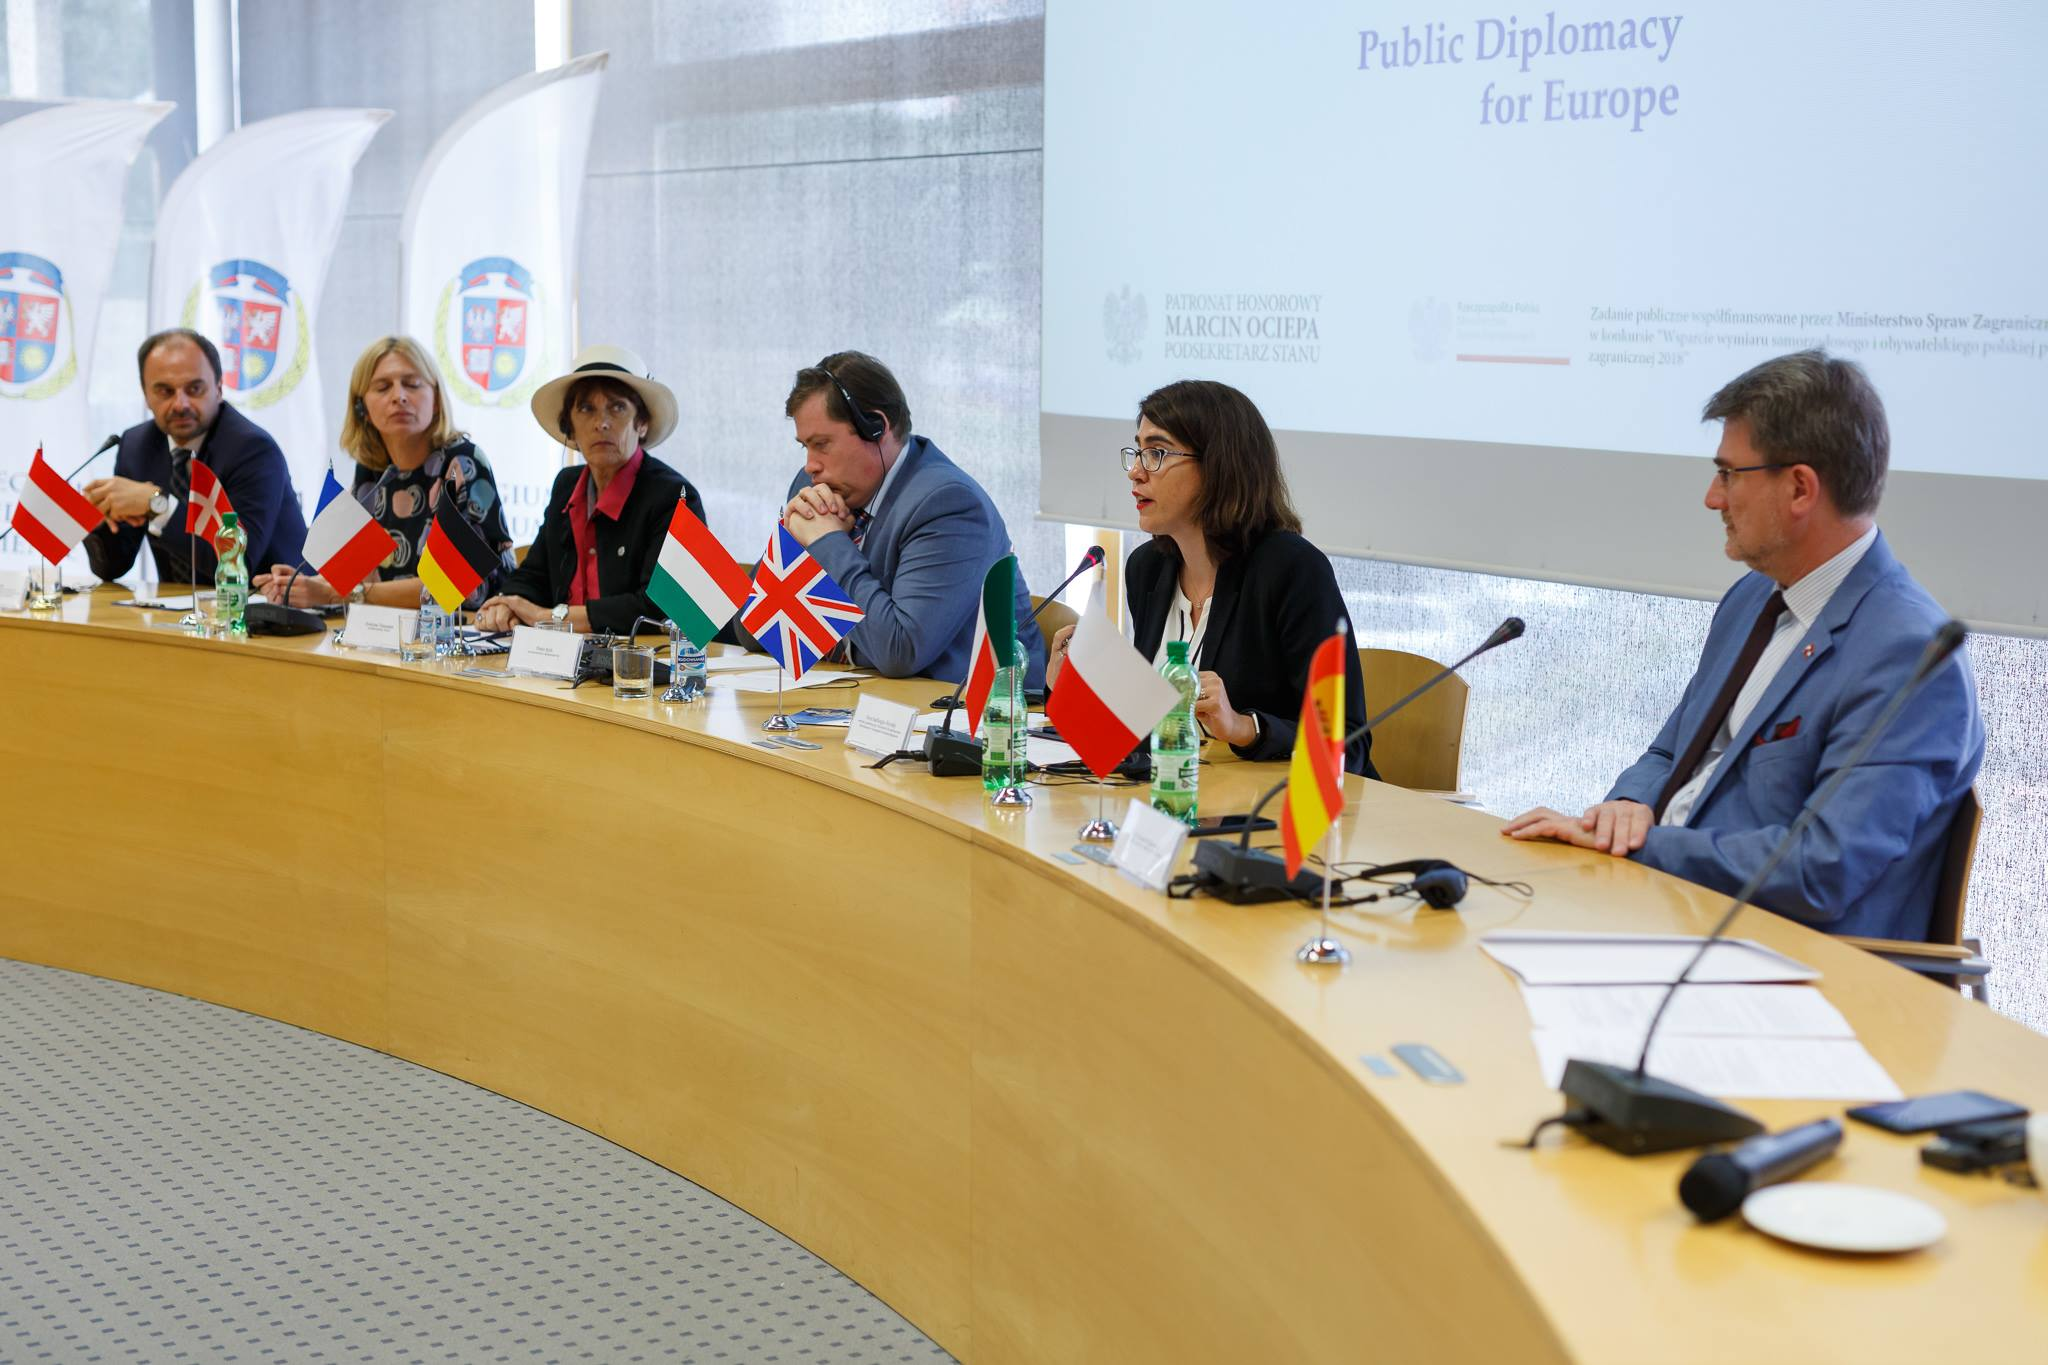 Public Diplomacy for Europe_panel